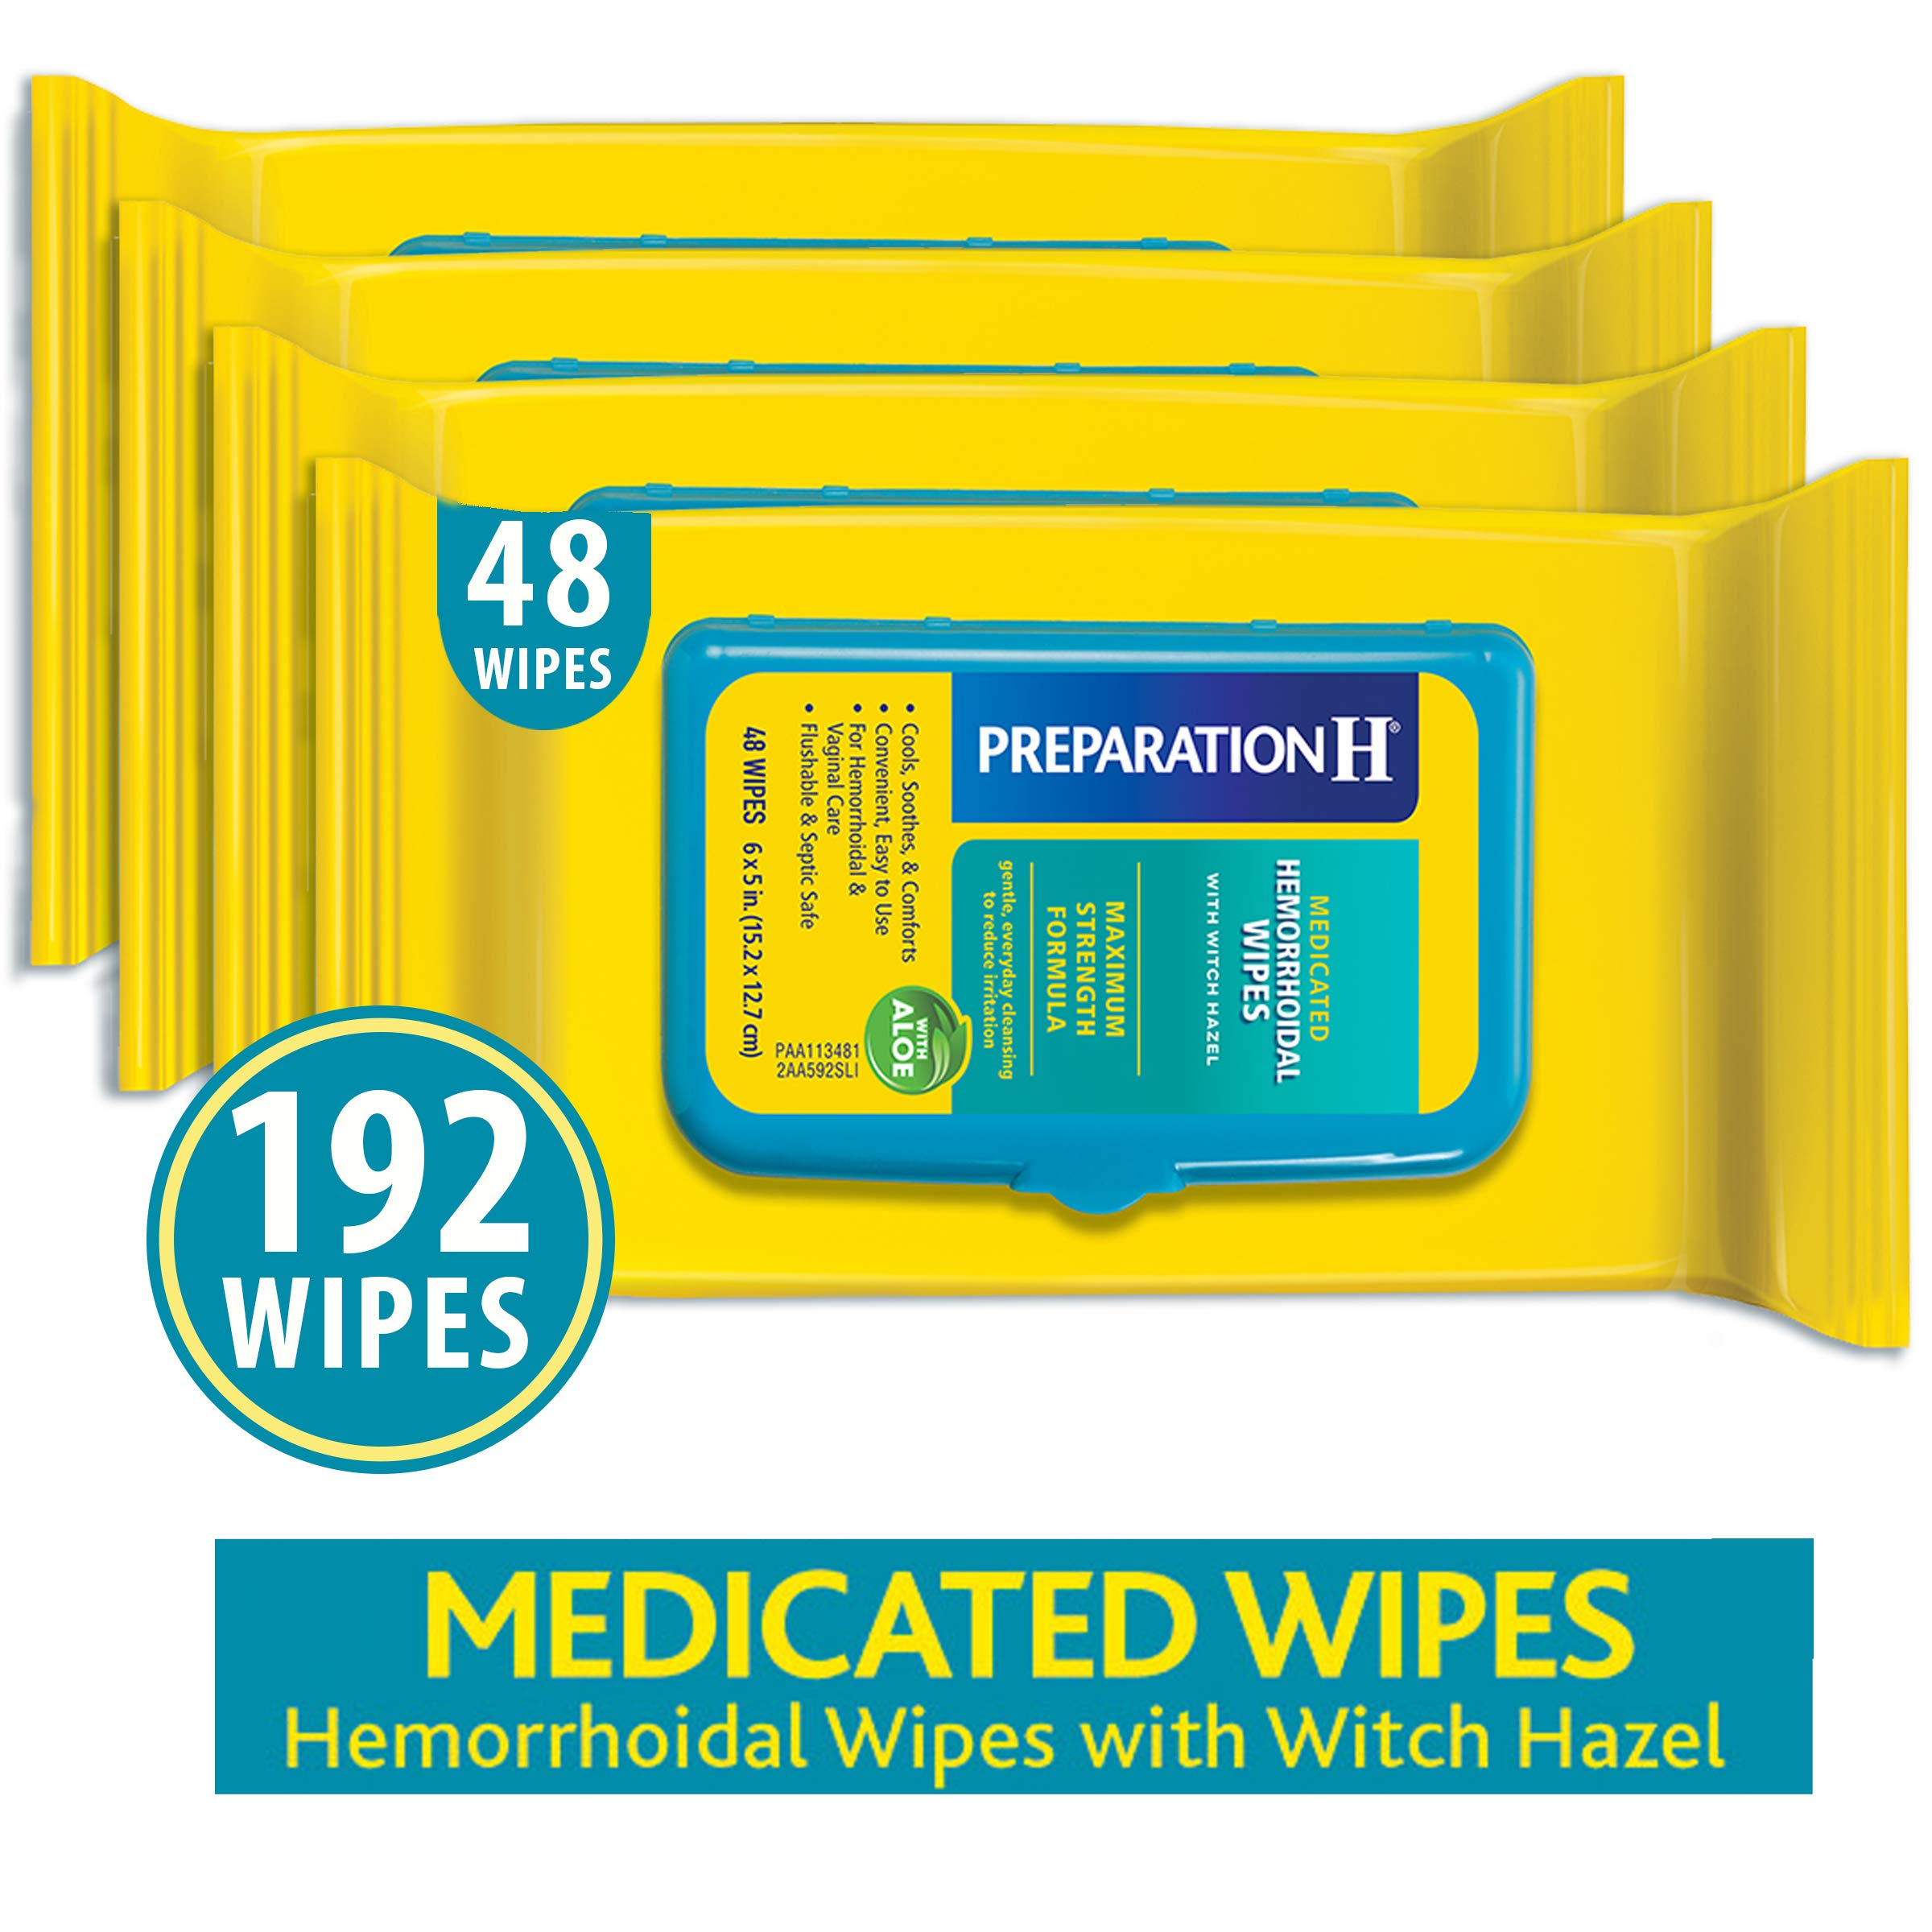 Preparation H Flushable Medicated Hemorrhoid Wipes, Maximum Strength Relief with Witch Hazel and Aloe, Pouch (4 x 48 Count, 192 Count) by Preparation H